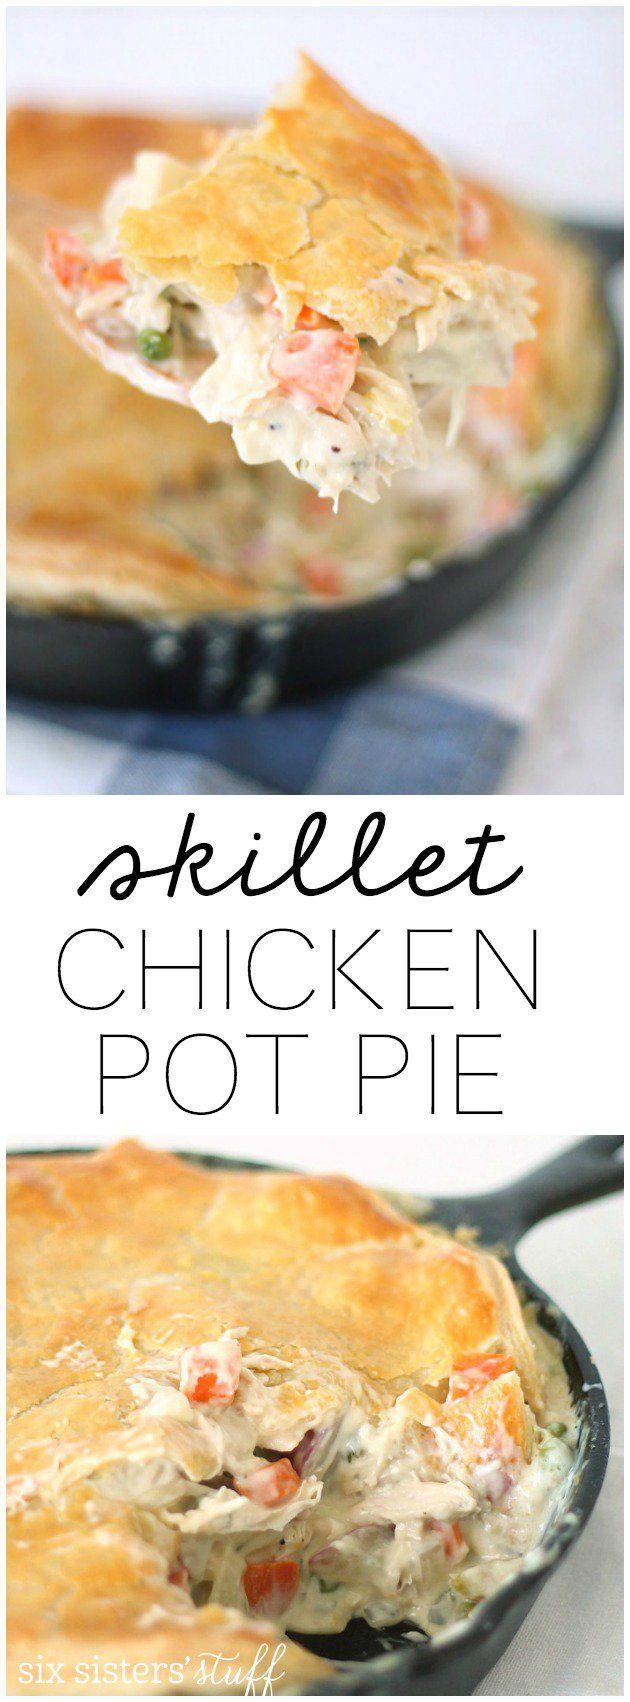 Easy Homemade Skillet Chicken Pot Pie from SixSistersStuff.com